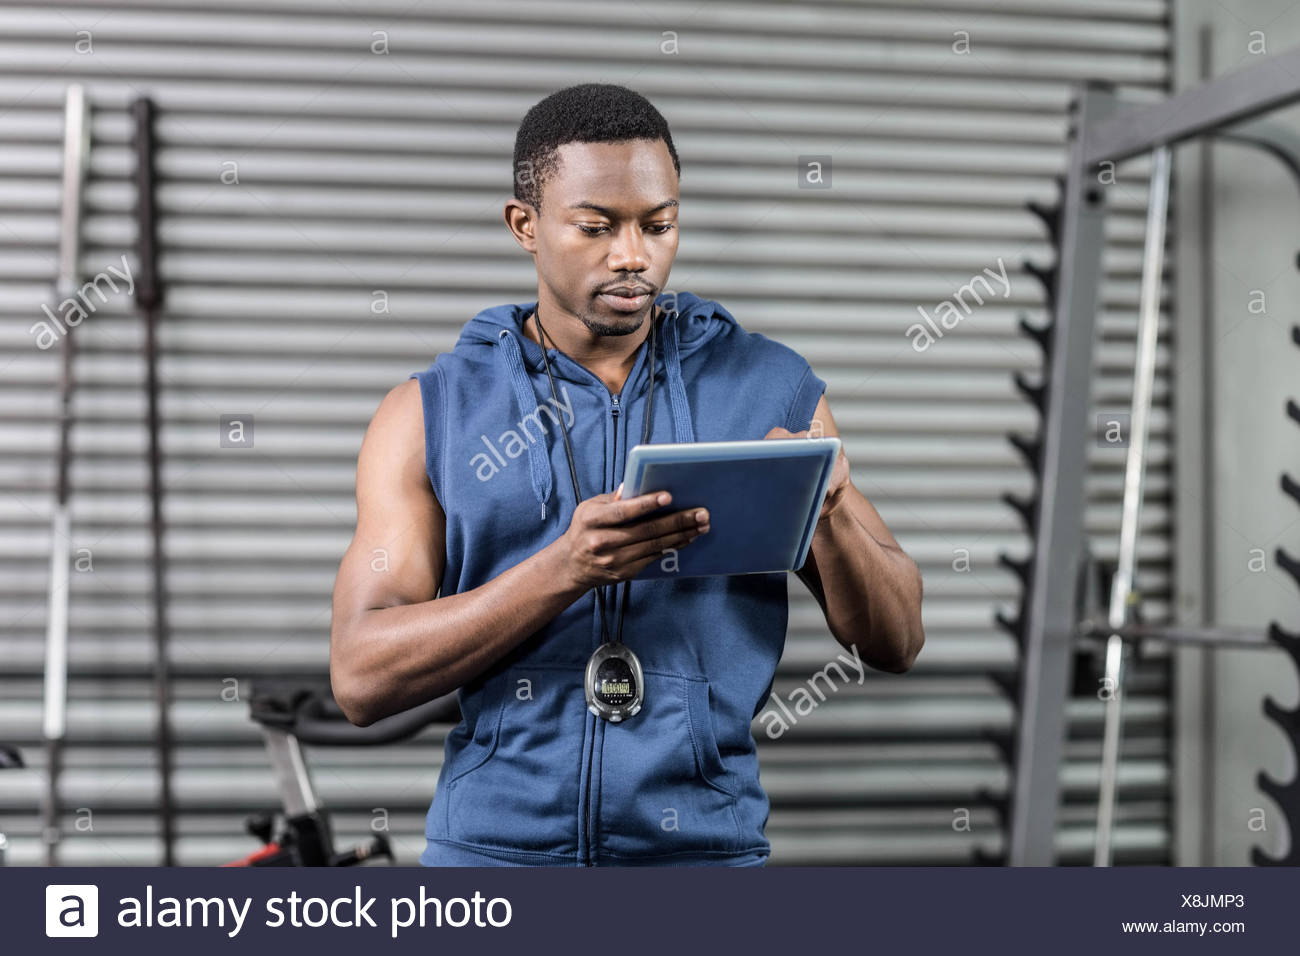 Athletic trainer using digital tablet - Stock Image